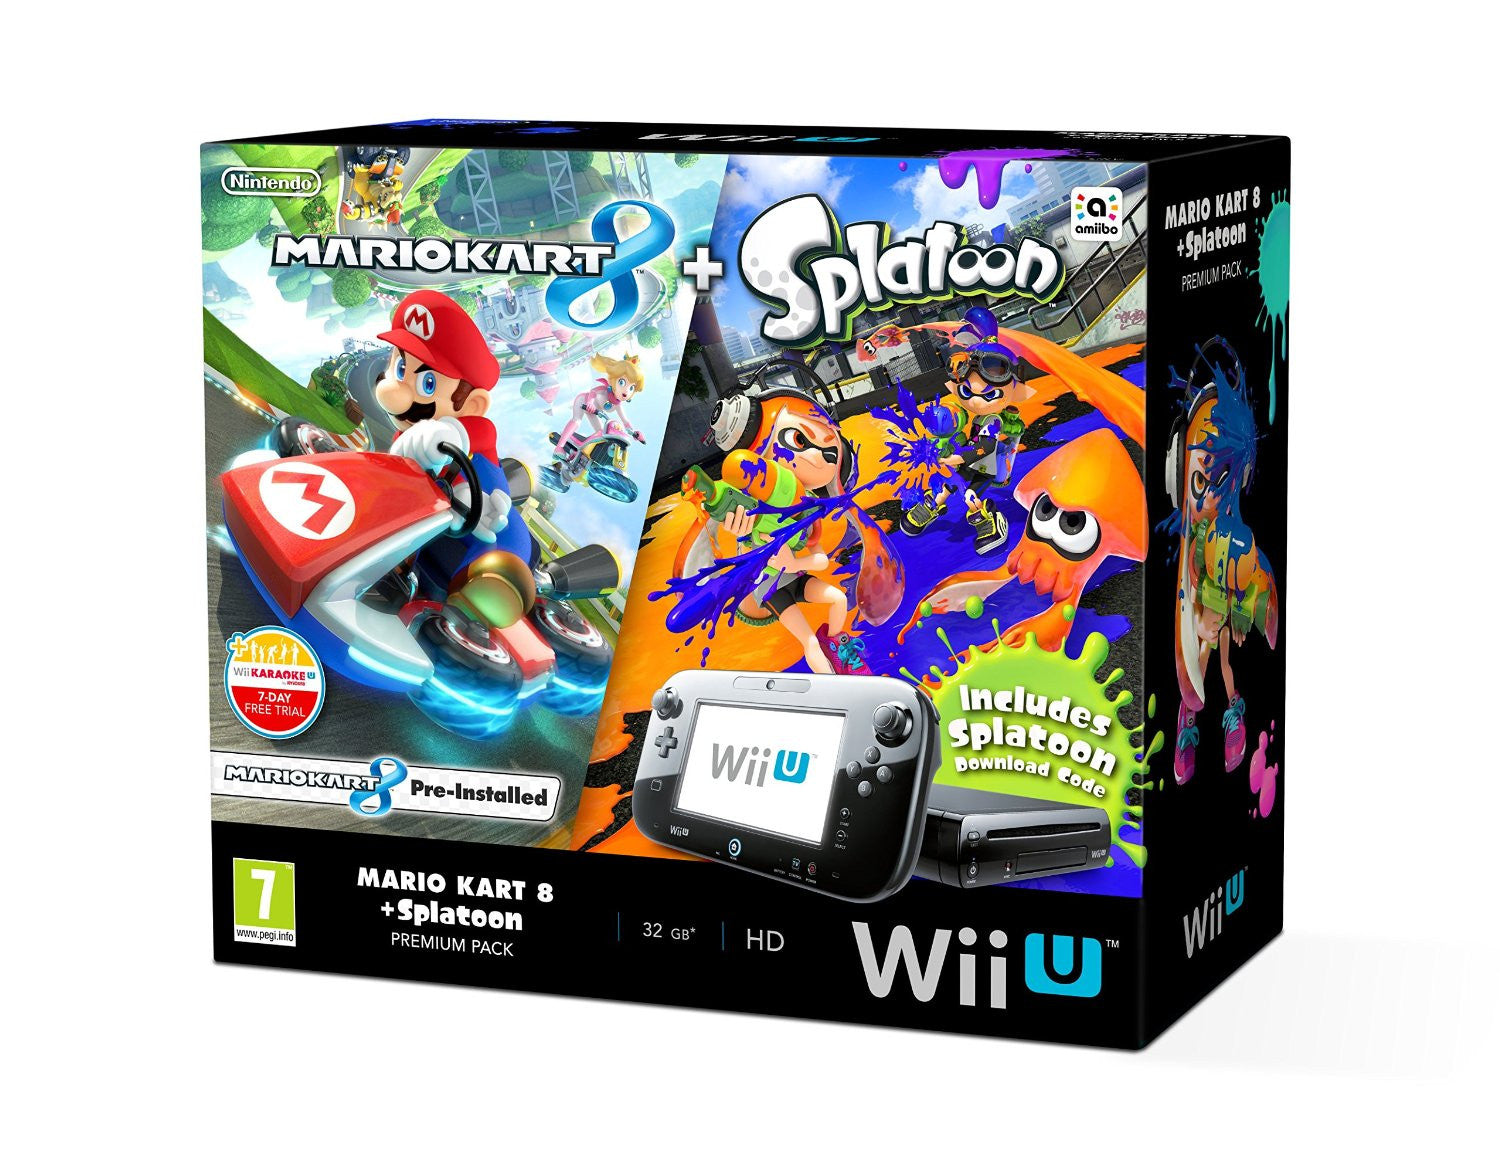 Nintendo Wii U With Mario Kart 8 & Splatoon